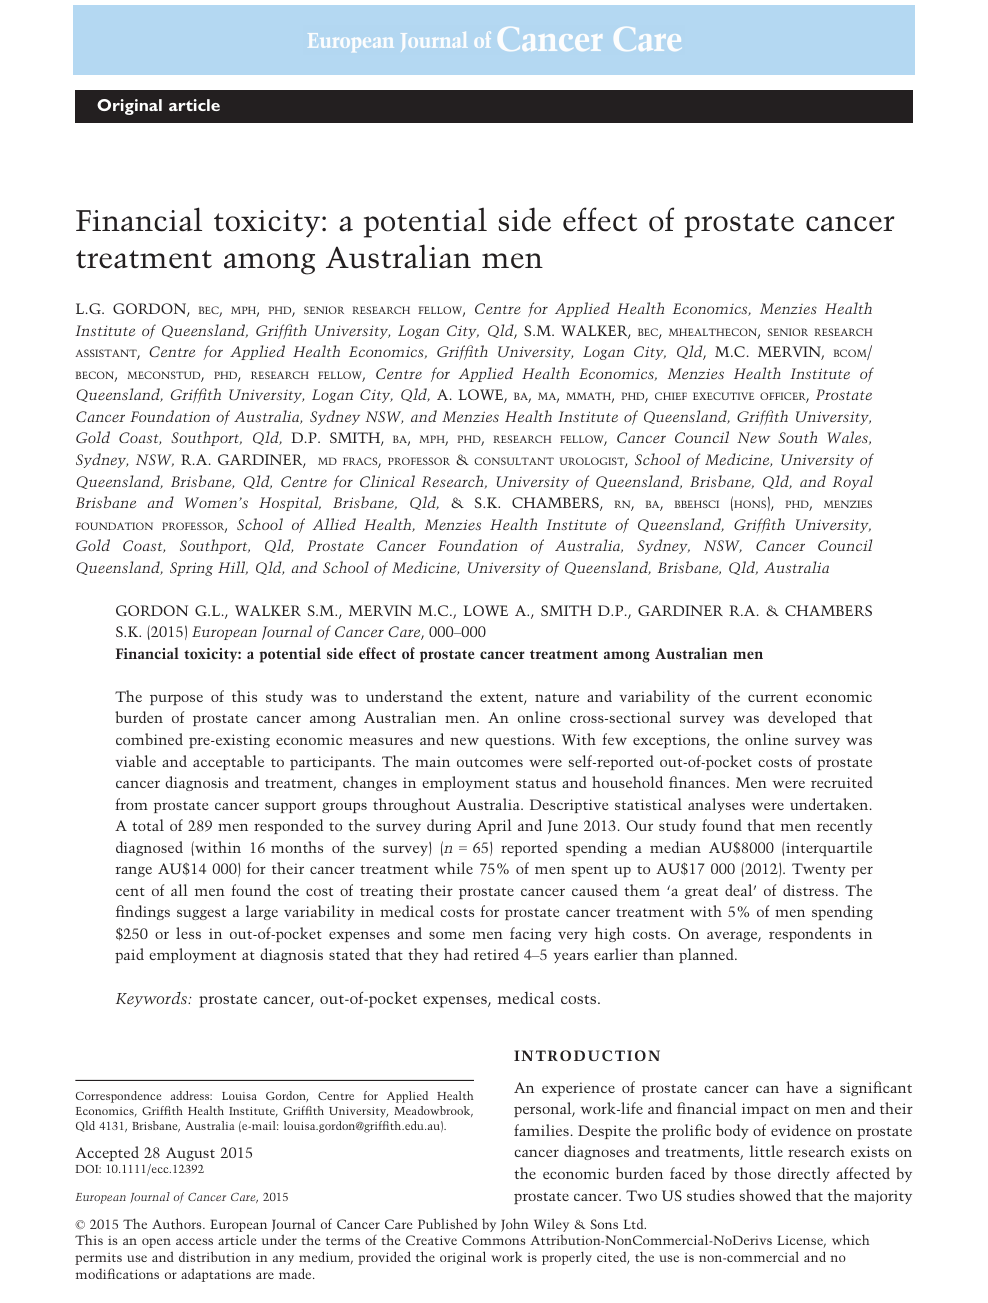 Financial Toxicity A Potential Side Effect Of Prostate Cancer